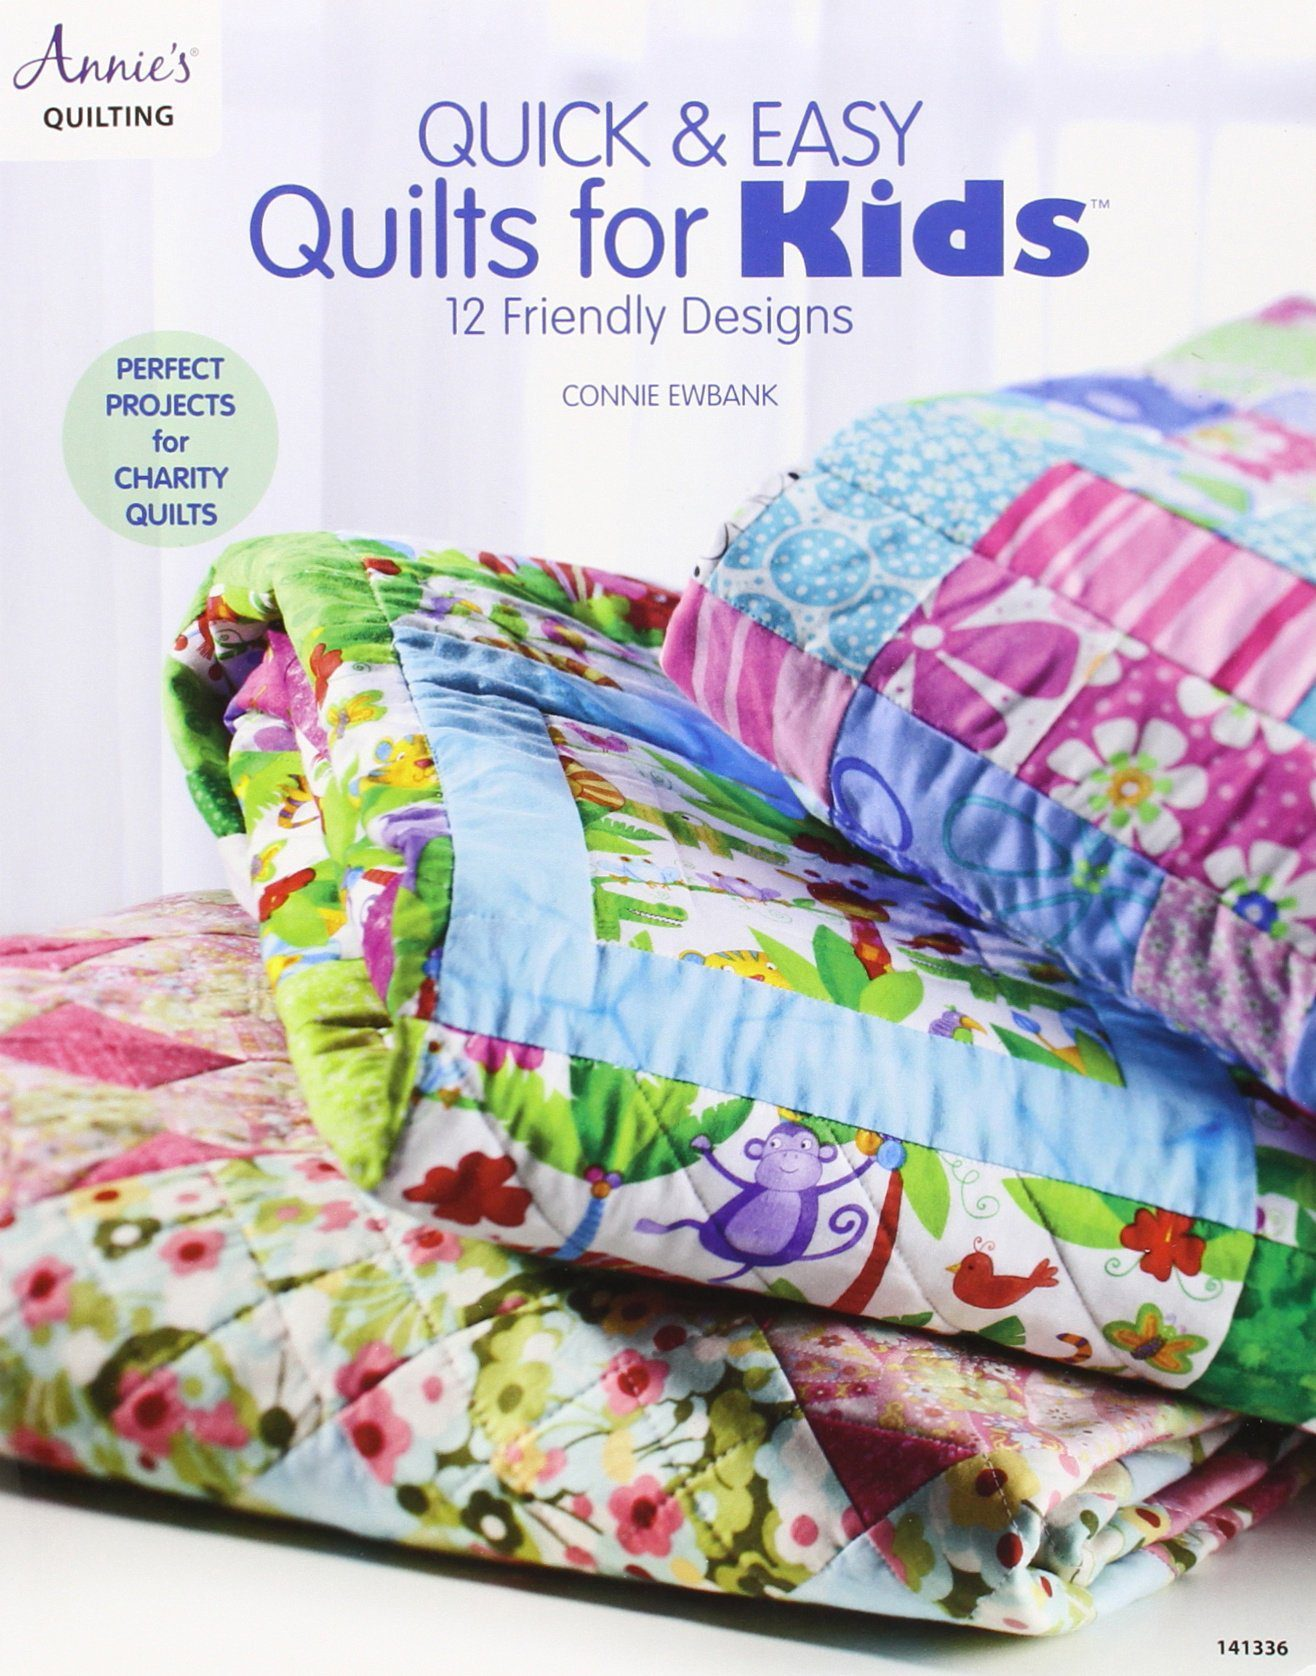 Quick and Easy Quilts for Kids